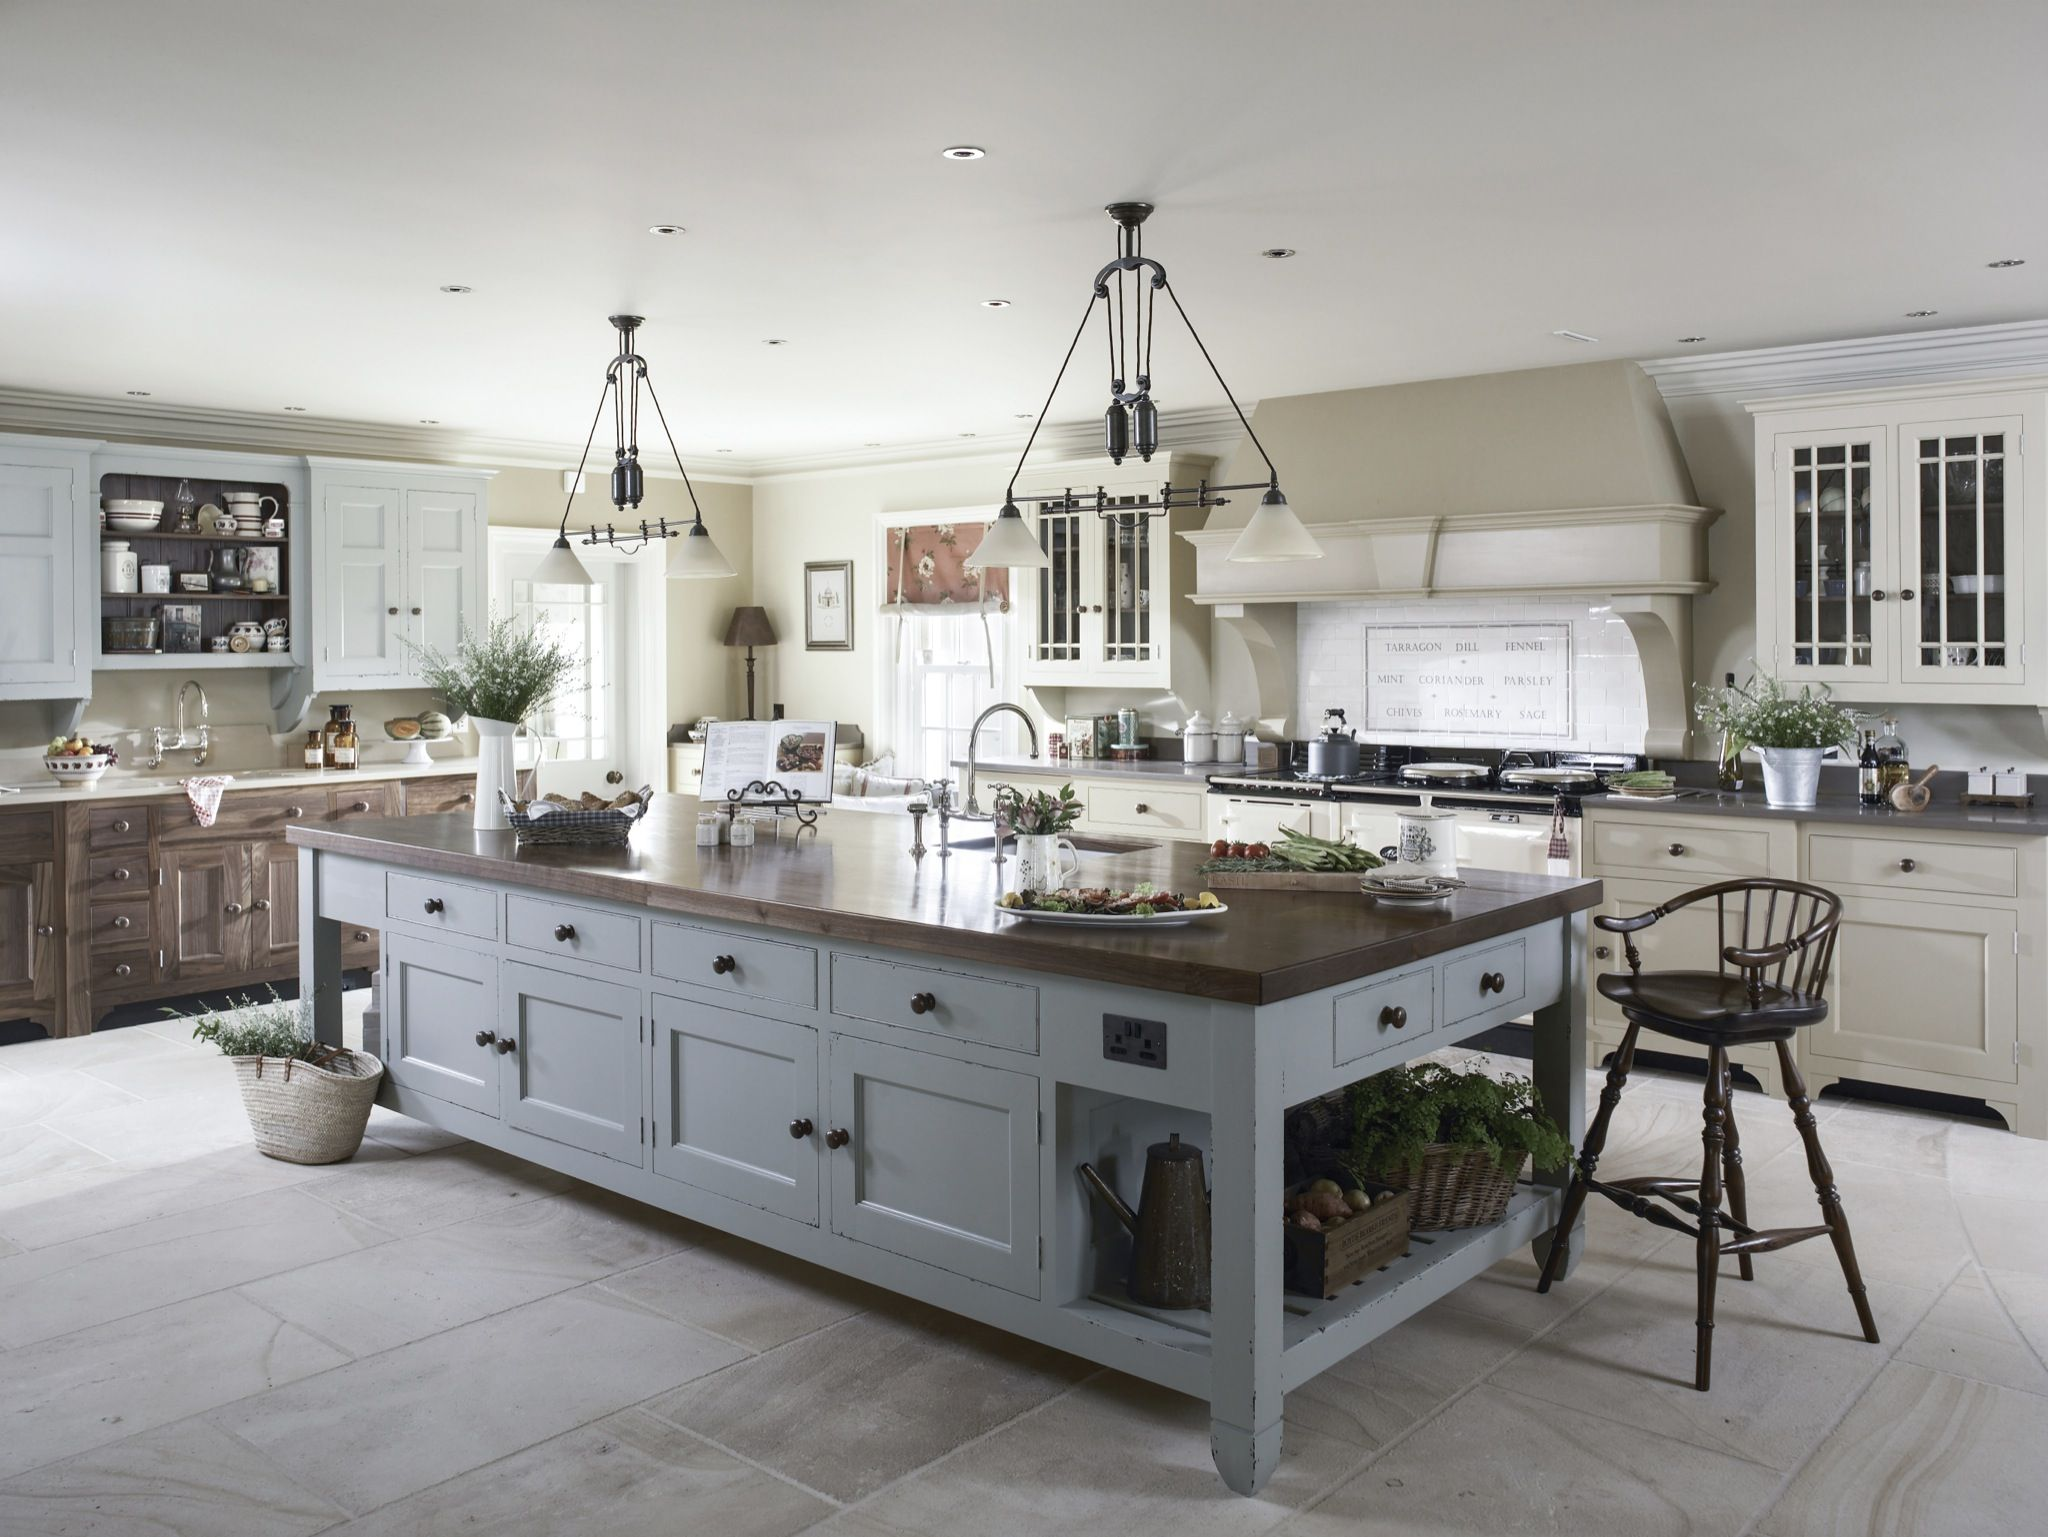 Farmhouse kitchen kitchen design decorating ideas housetohome co - Country House Ireland Hayburn Co